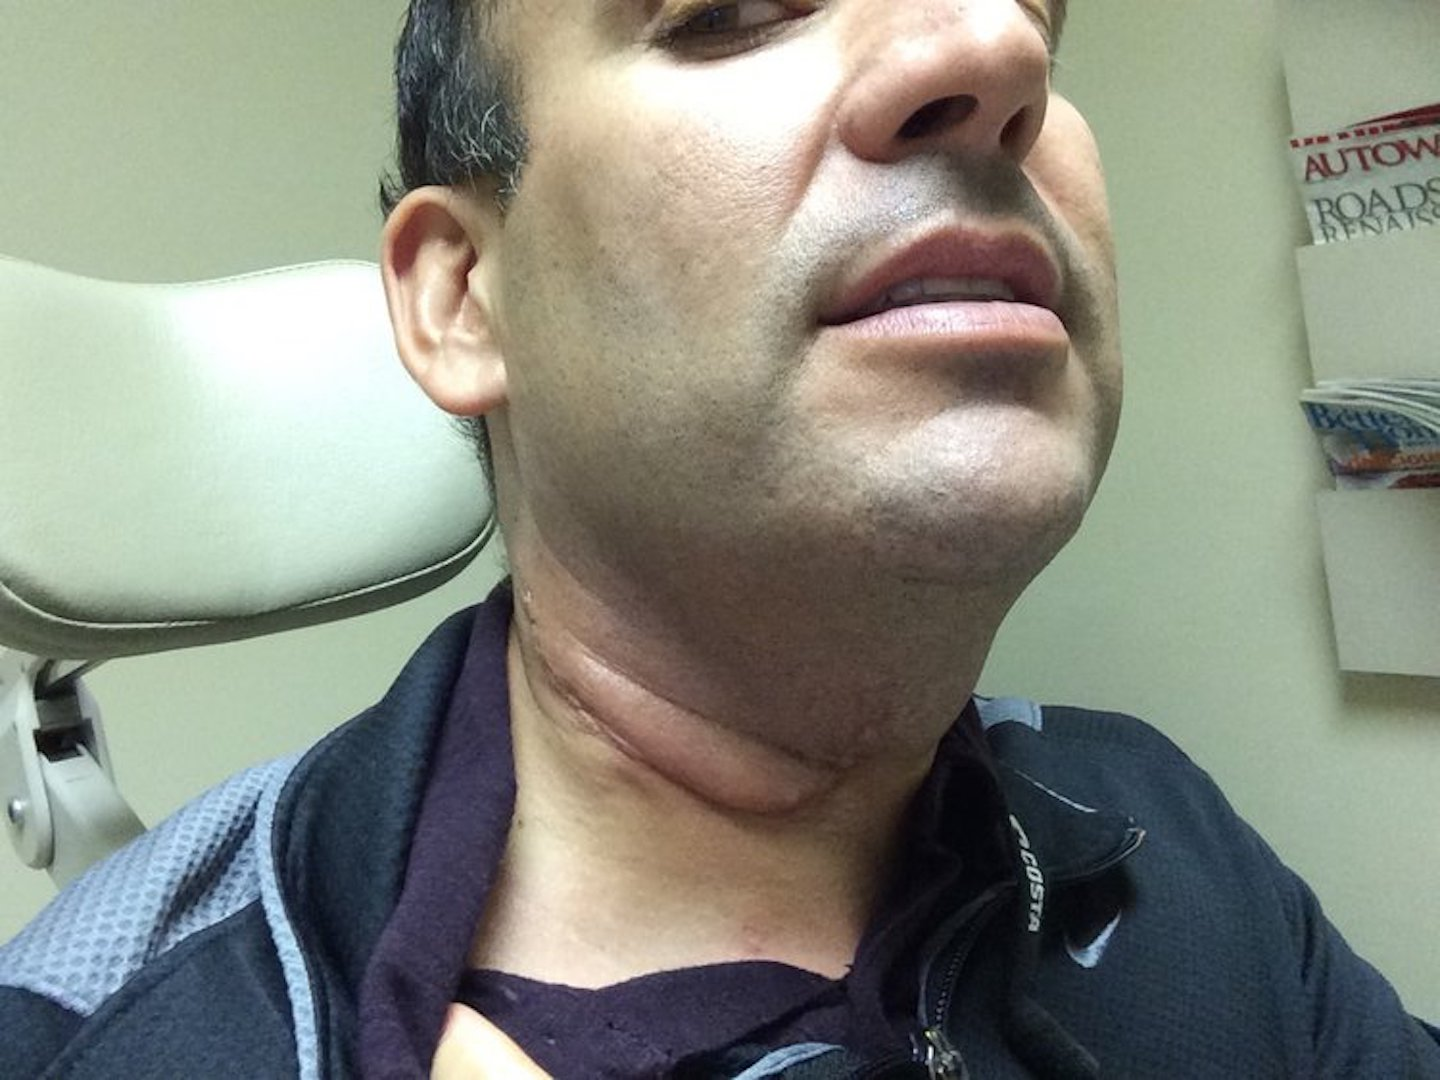 hpv head neck cancer stage one hpv cervical cancer